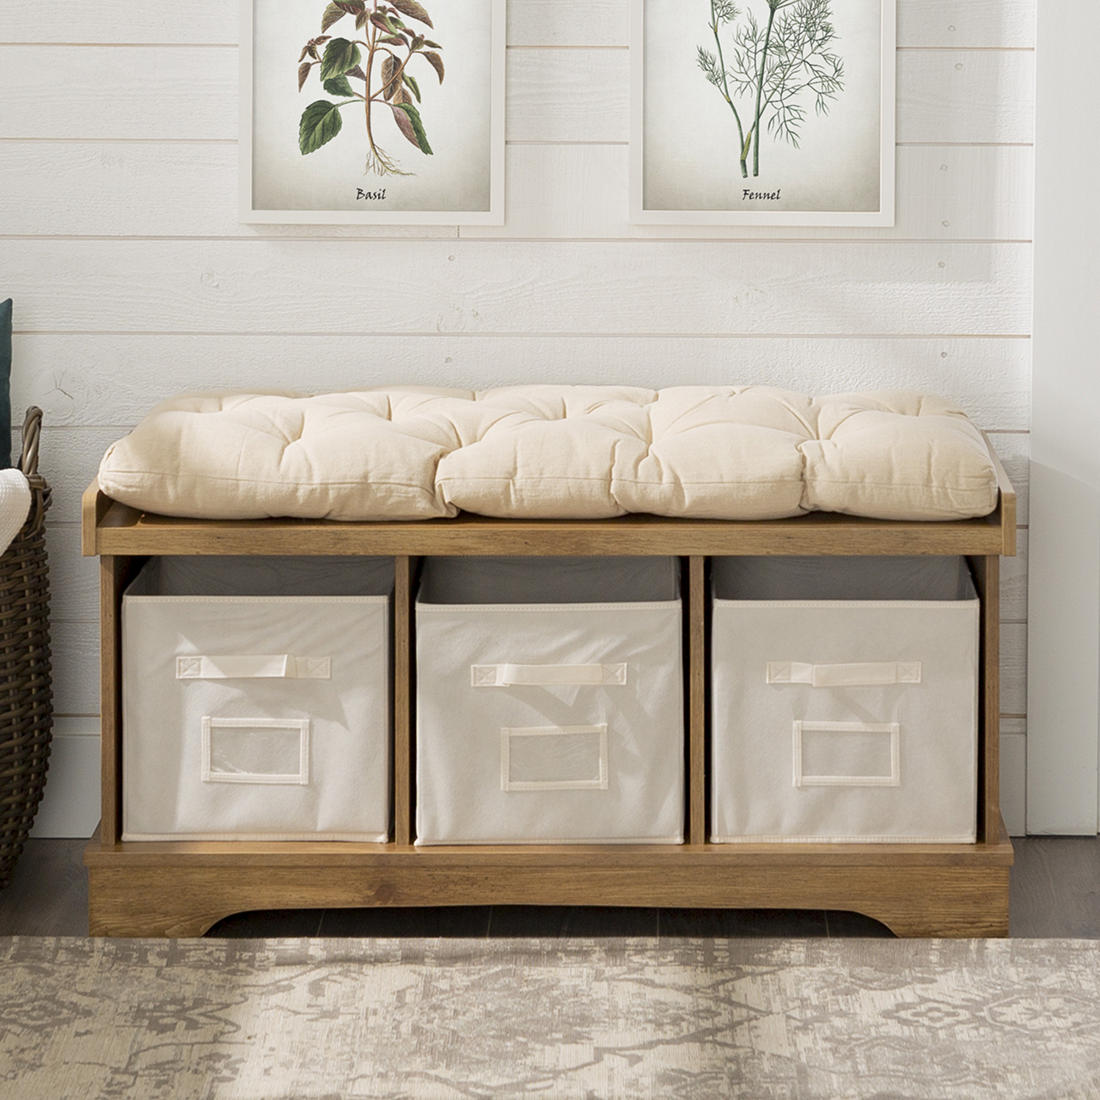 Brilliant 42 Farmhouse Entryway Storage Bench Barnwood Gmtry Best Dining Table And Chair Ideas Images Gmtryco